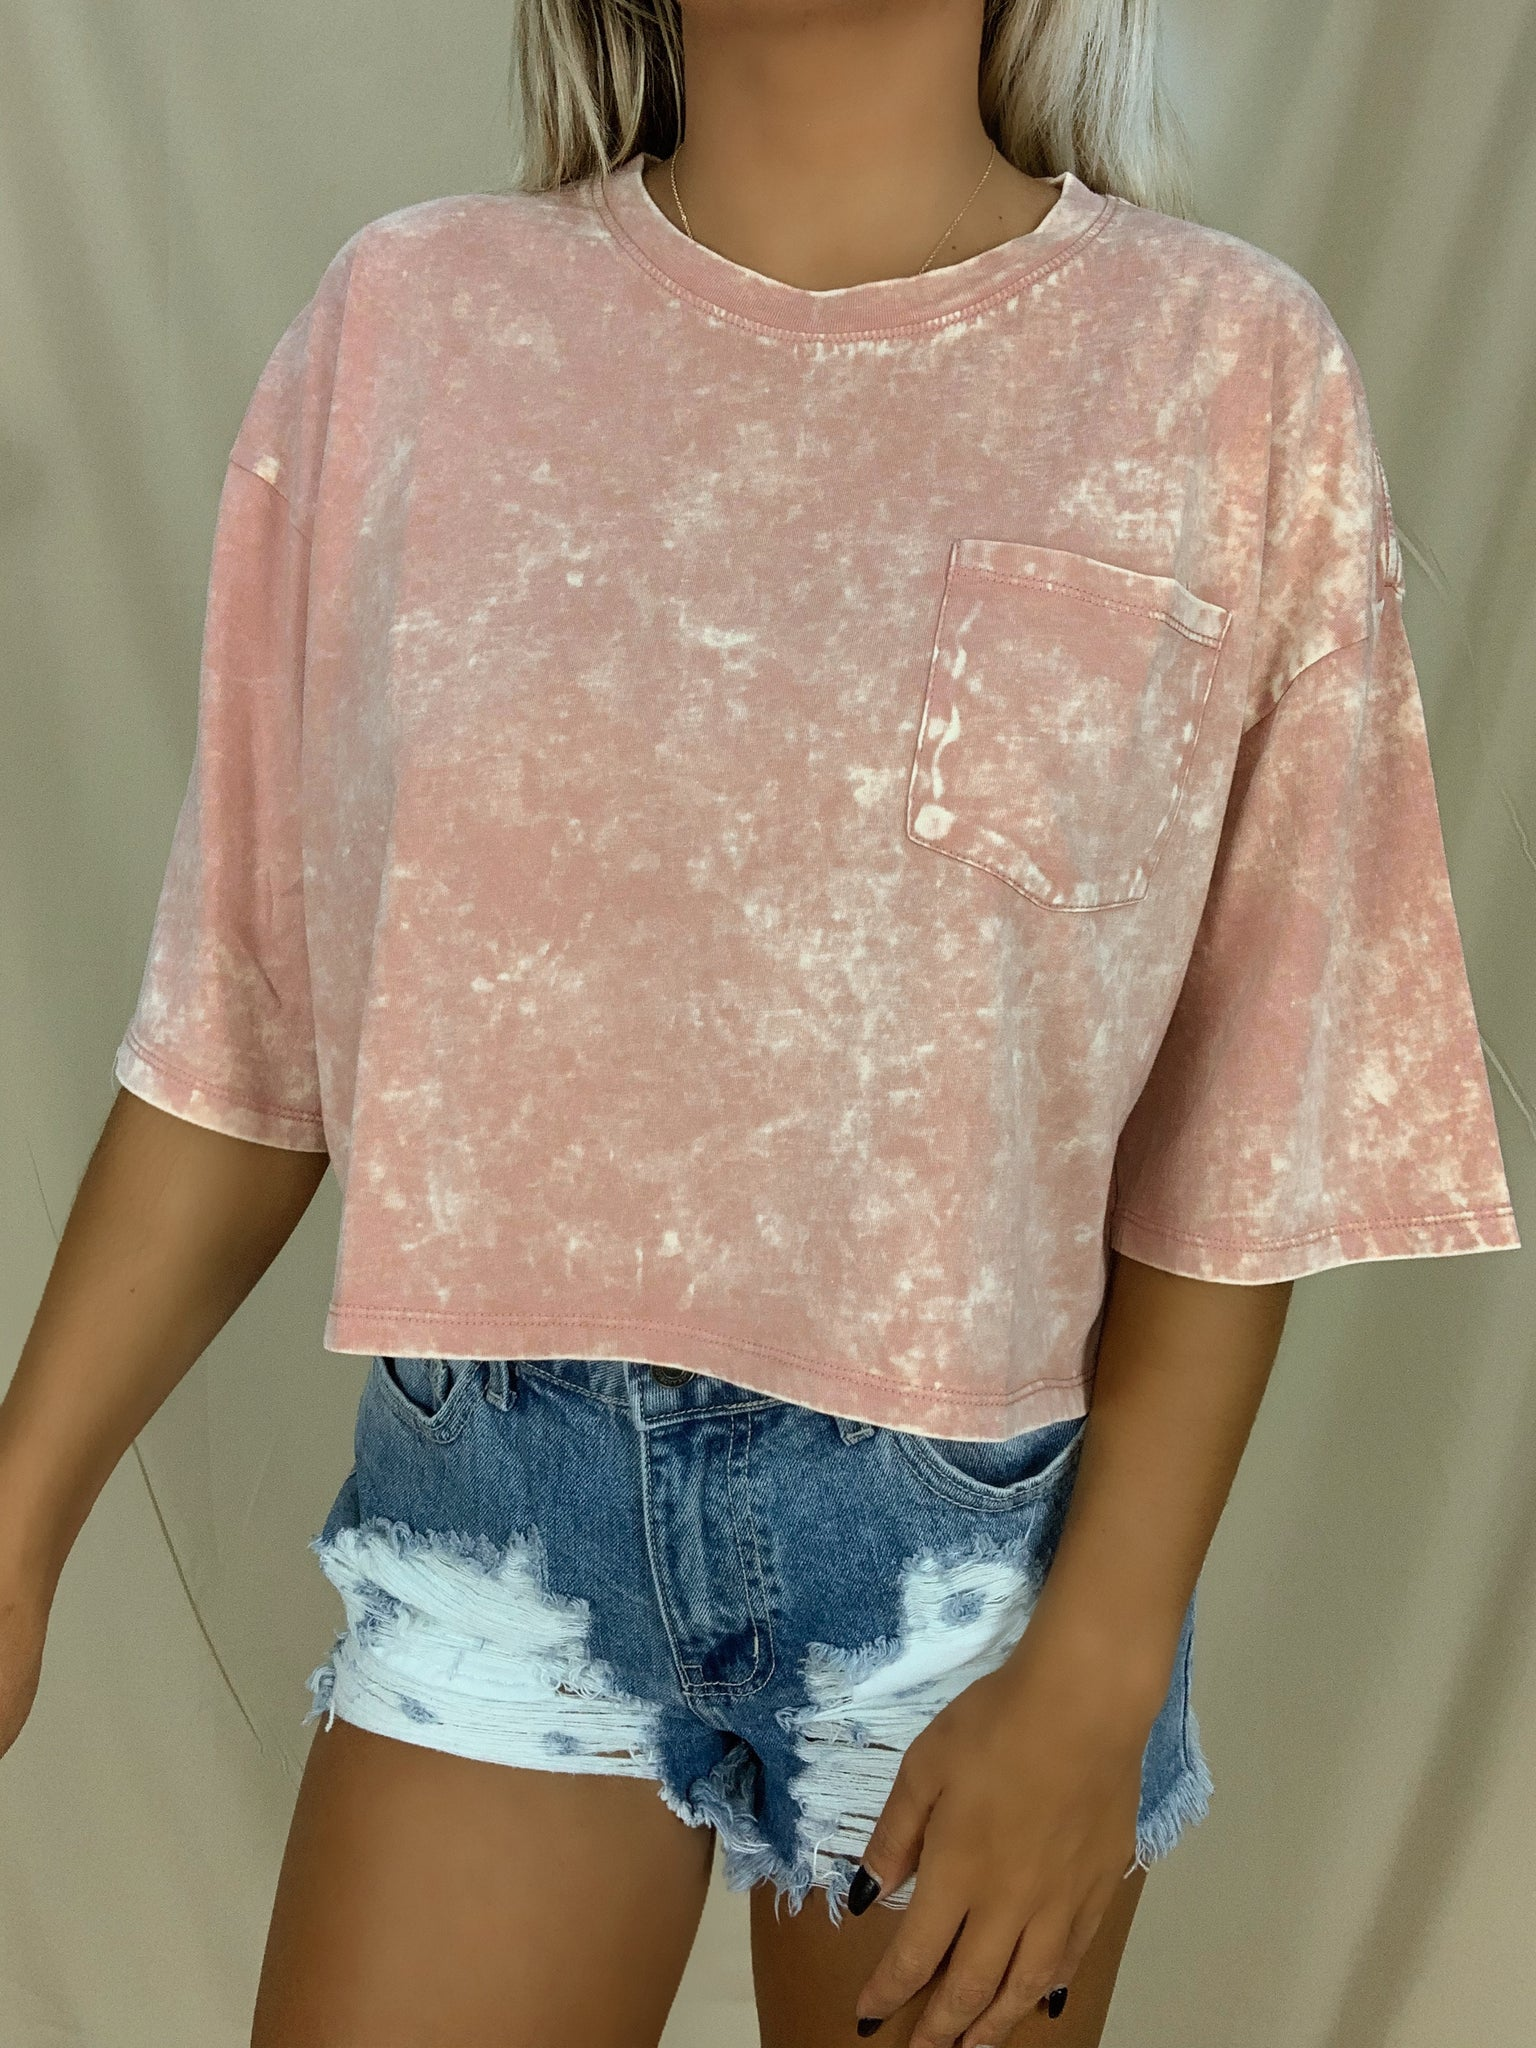 Mineral Washed Cropped Tee (Pink)